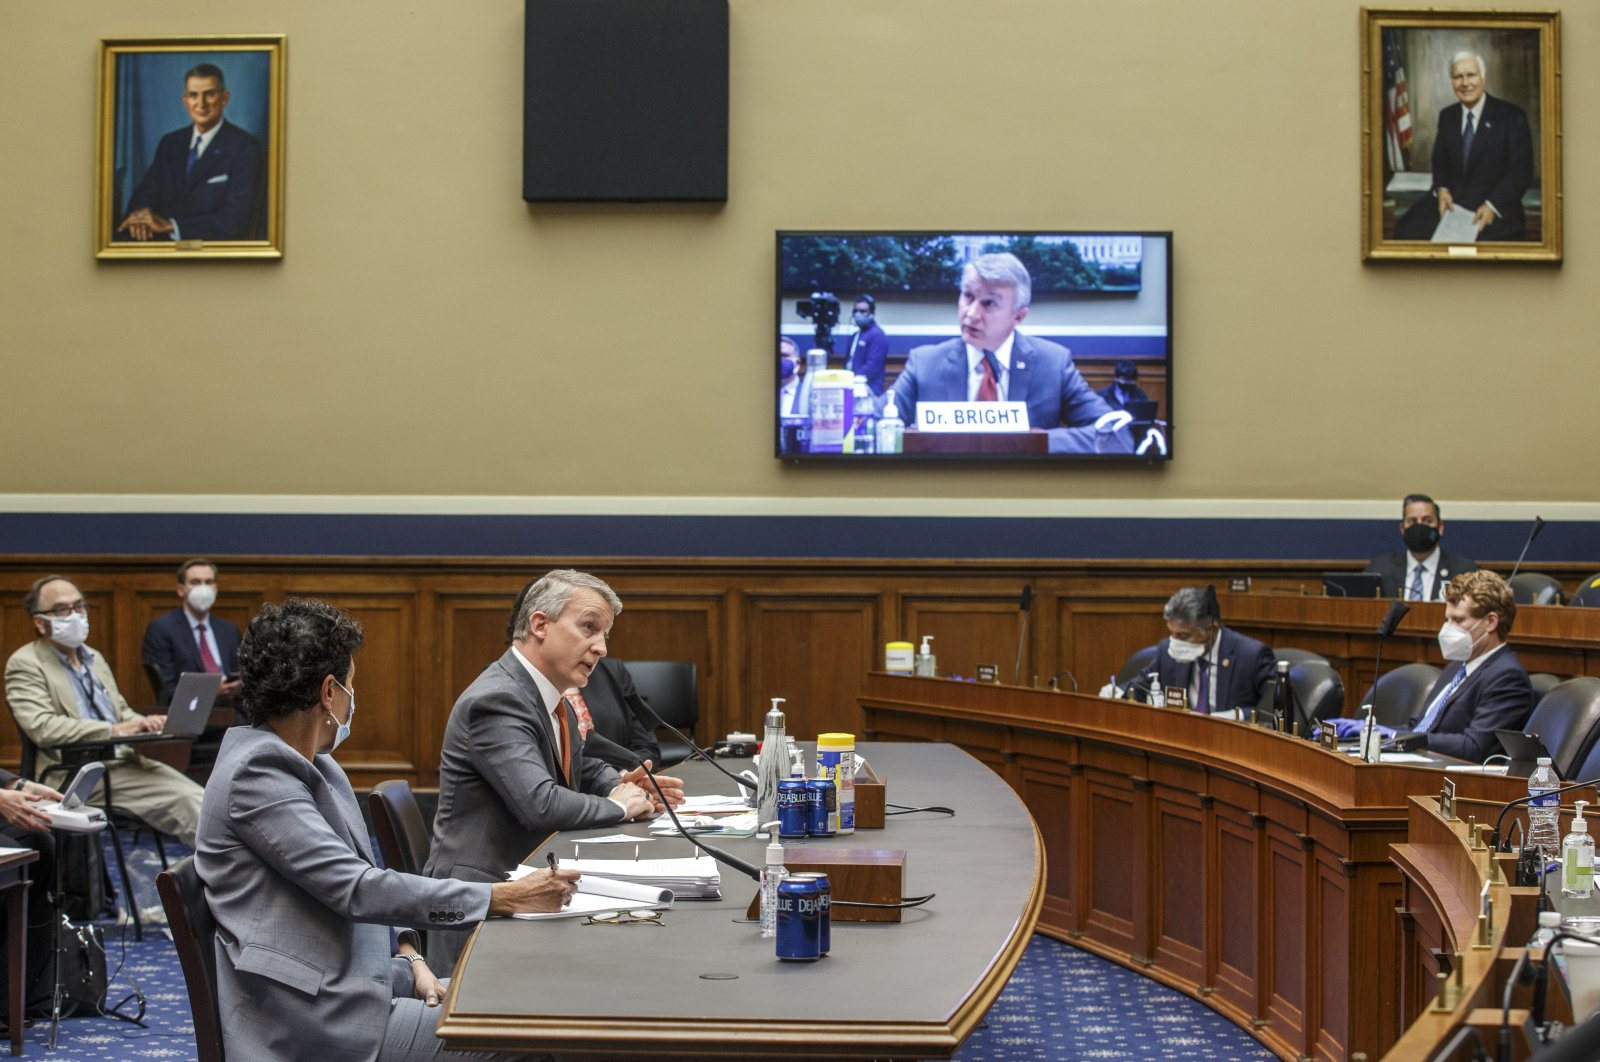 Dr. Richard Bright, former director of the Biomedical Advanced Research and Development Authority, testifies before a House Energy and Commerce Subcommittee on Health hearing to discuss protecting scientific integrity in response to the coronavirus outbreak on Capitol Hill, Washington, D.C., May 14, 2020. (AP Photo)